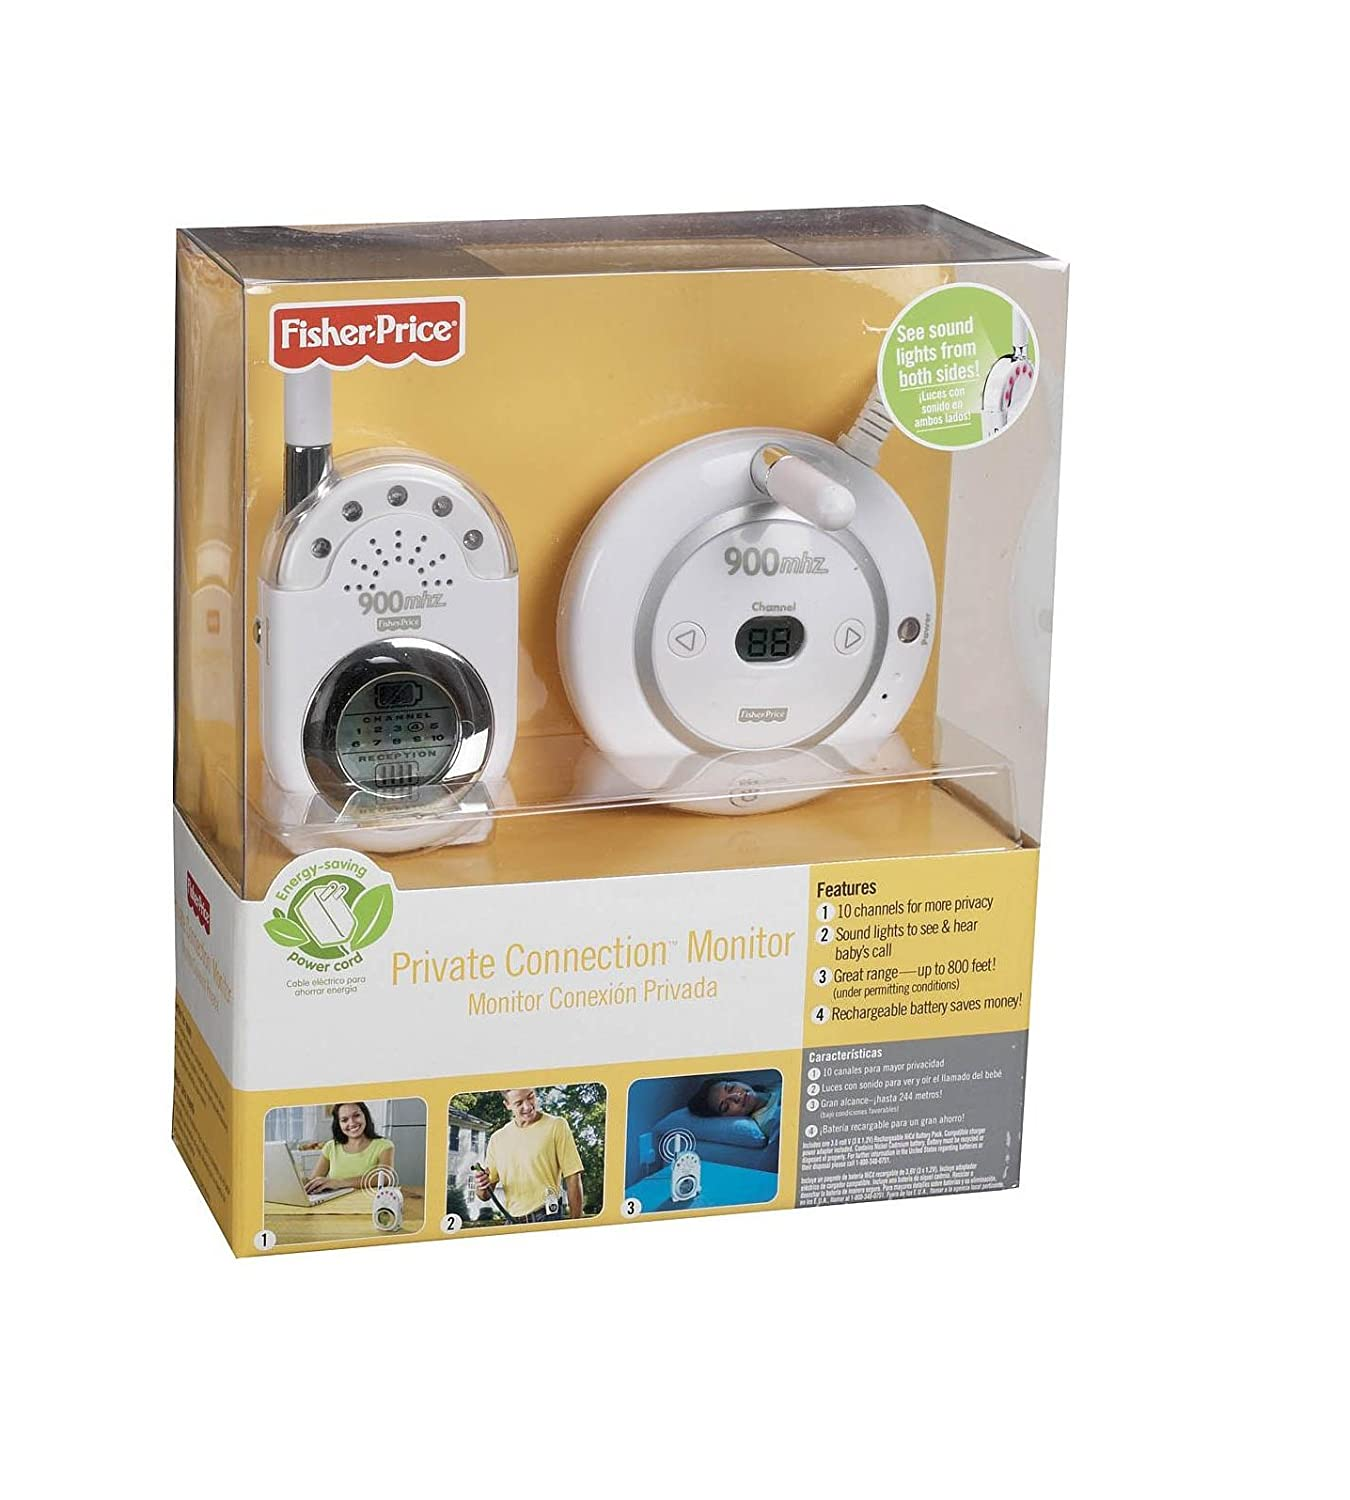 Amazon.com : Fisher-Price Private Connection Monitor in White : Baby Audio Visual Monitors : Baby